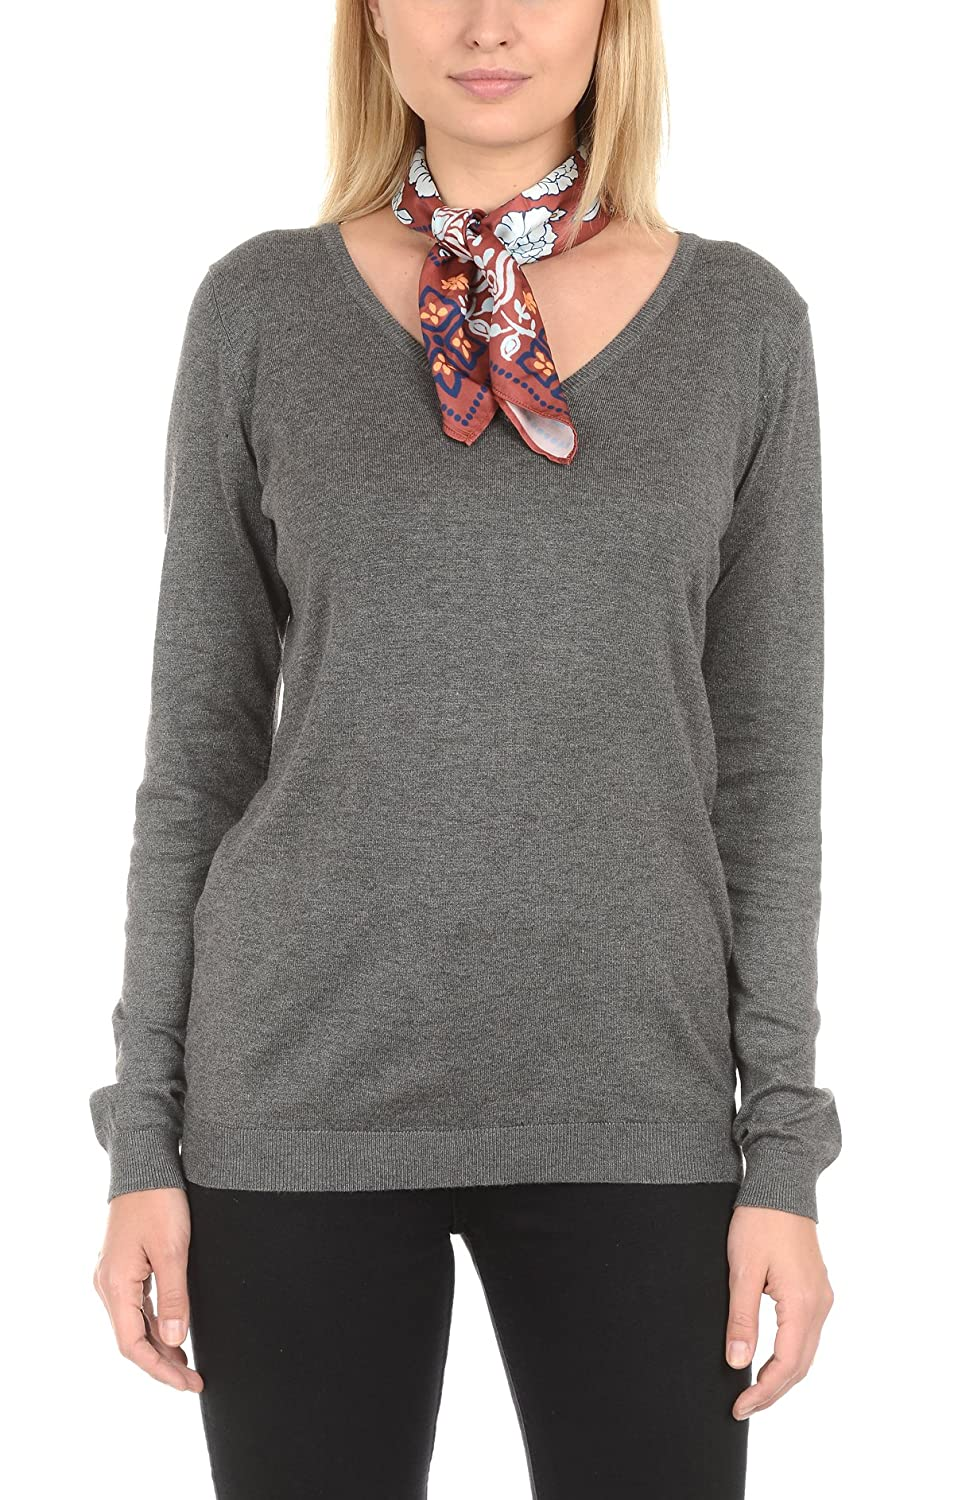 33fdd1e40 SWEET SWEATER  There is nothing sweeter than a sweater so versatile you can  be pair it with any bottoms already in your closet. This Jachs Girlfriend  V-Neck ...